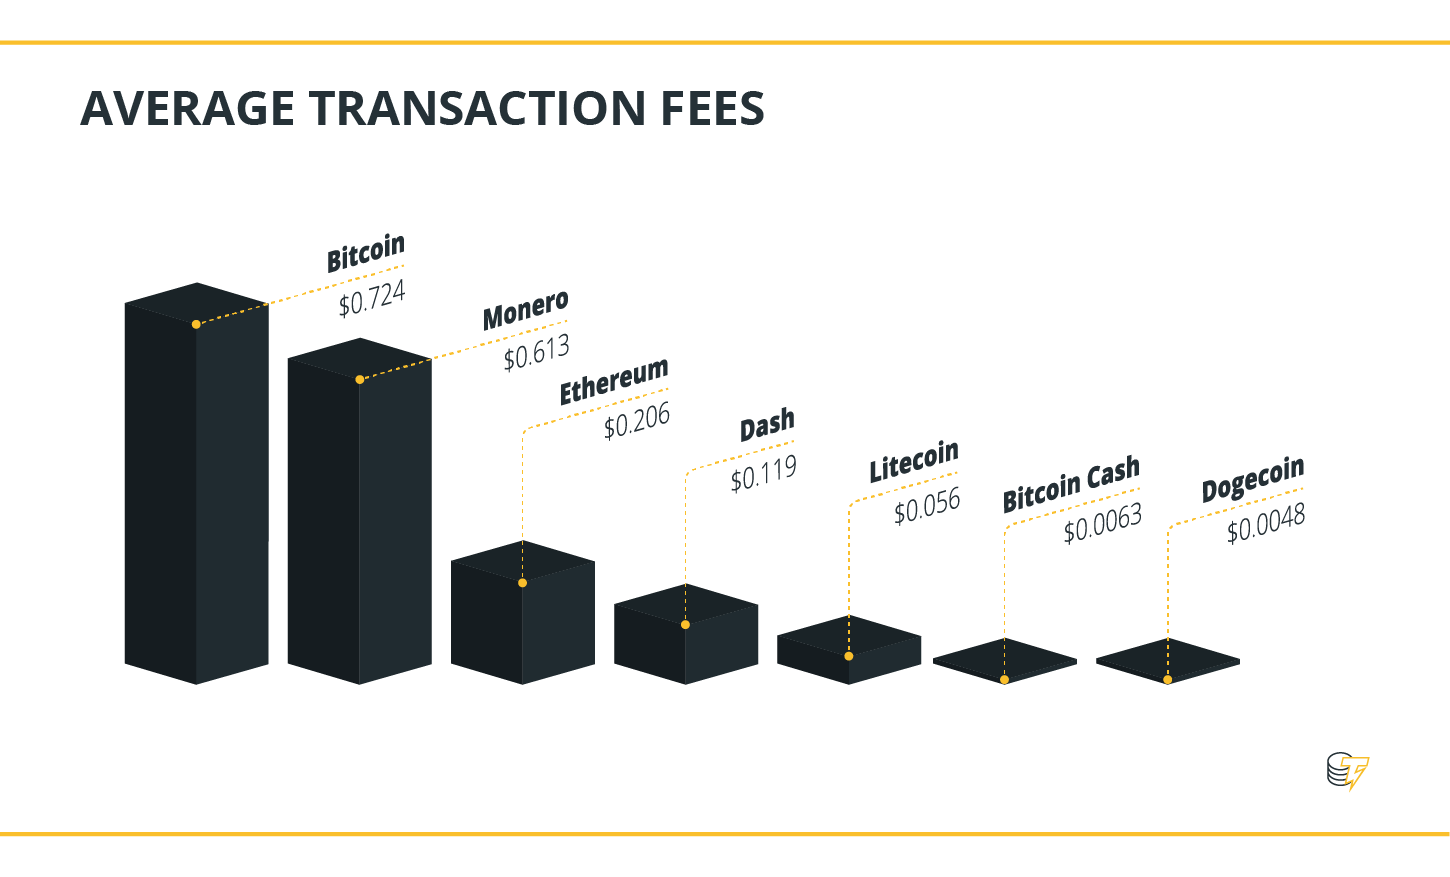 Avg Transaction Fees